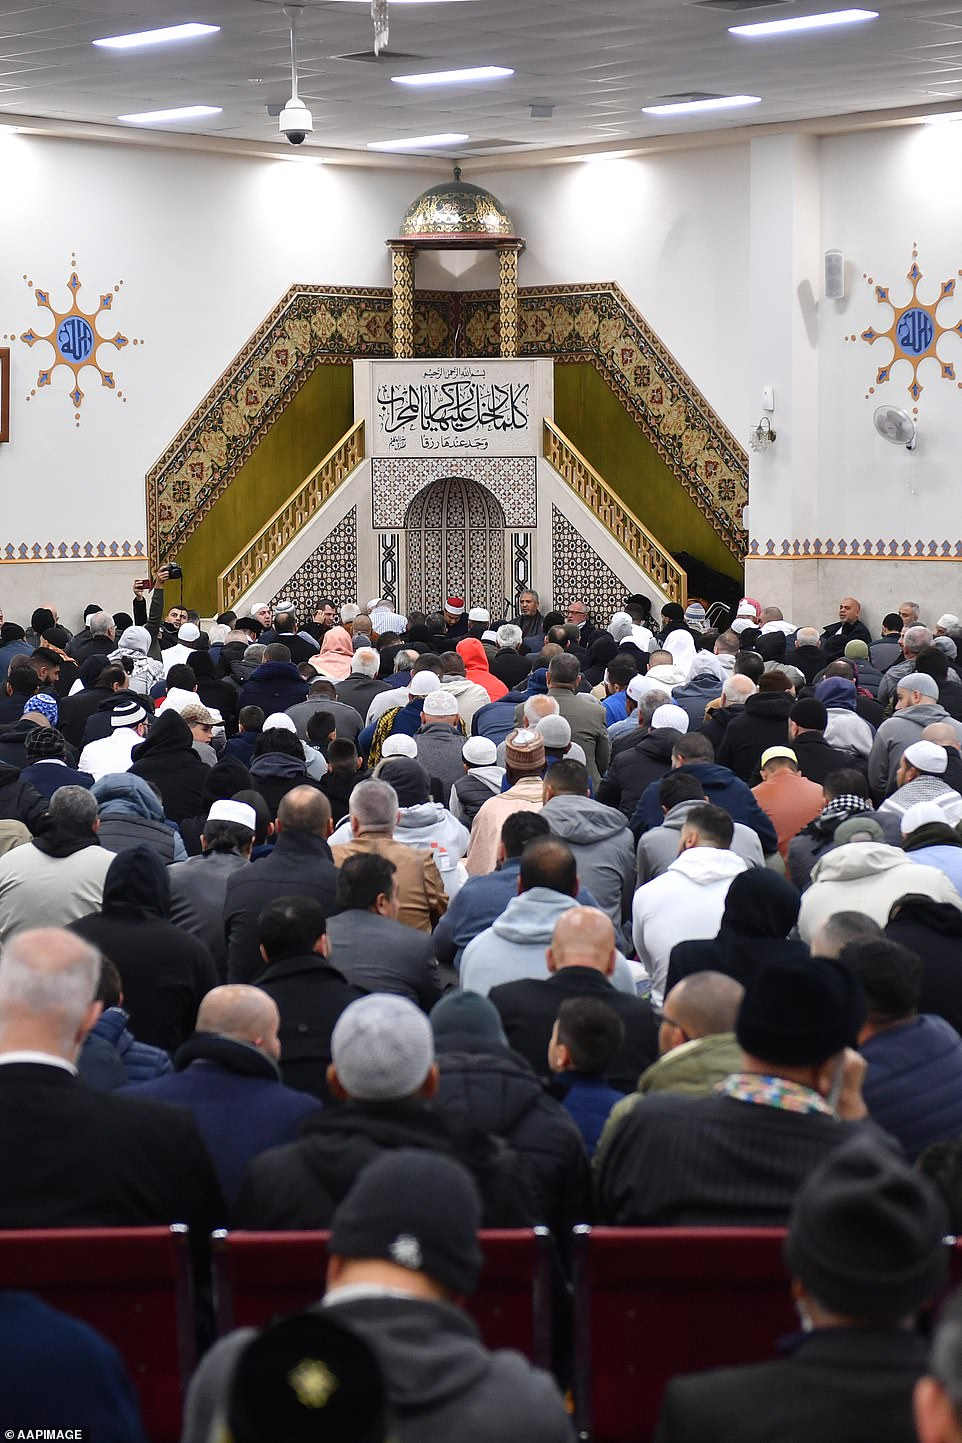 Muslim worshippers have crammed into a Sydney mosque to celebrate the end of Ramadan with the Eid-al-Fitr festival